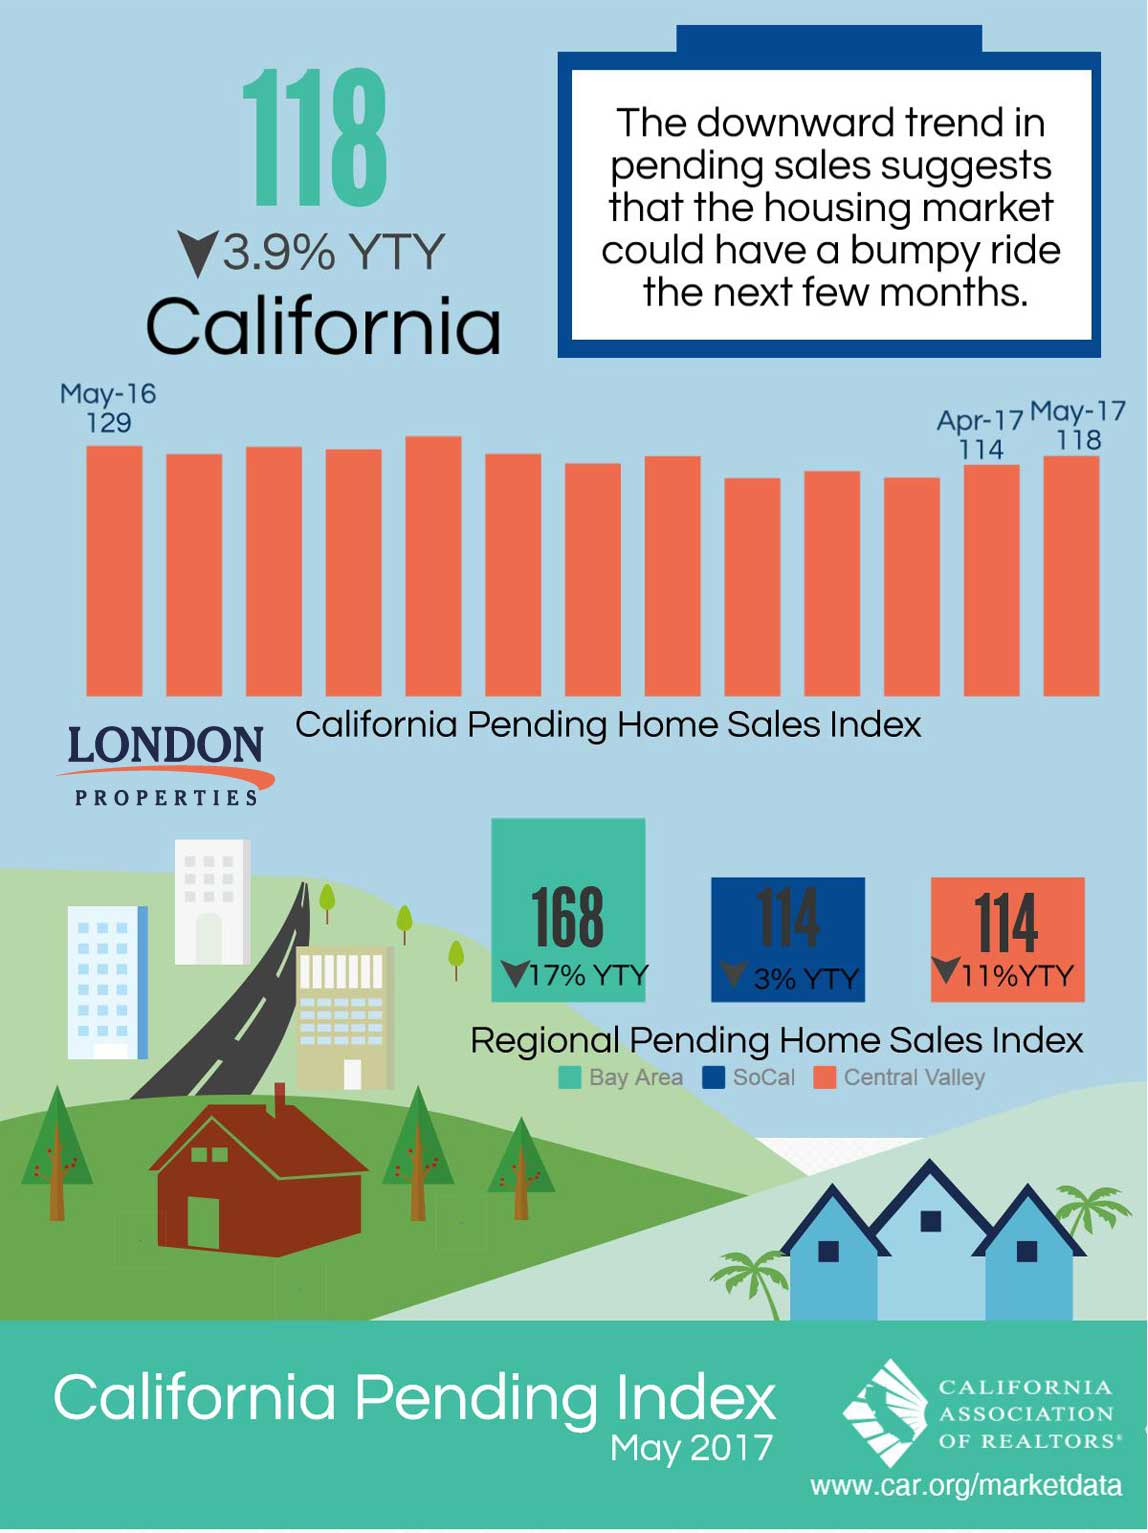 California Pending Index May 2017